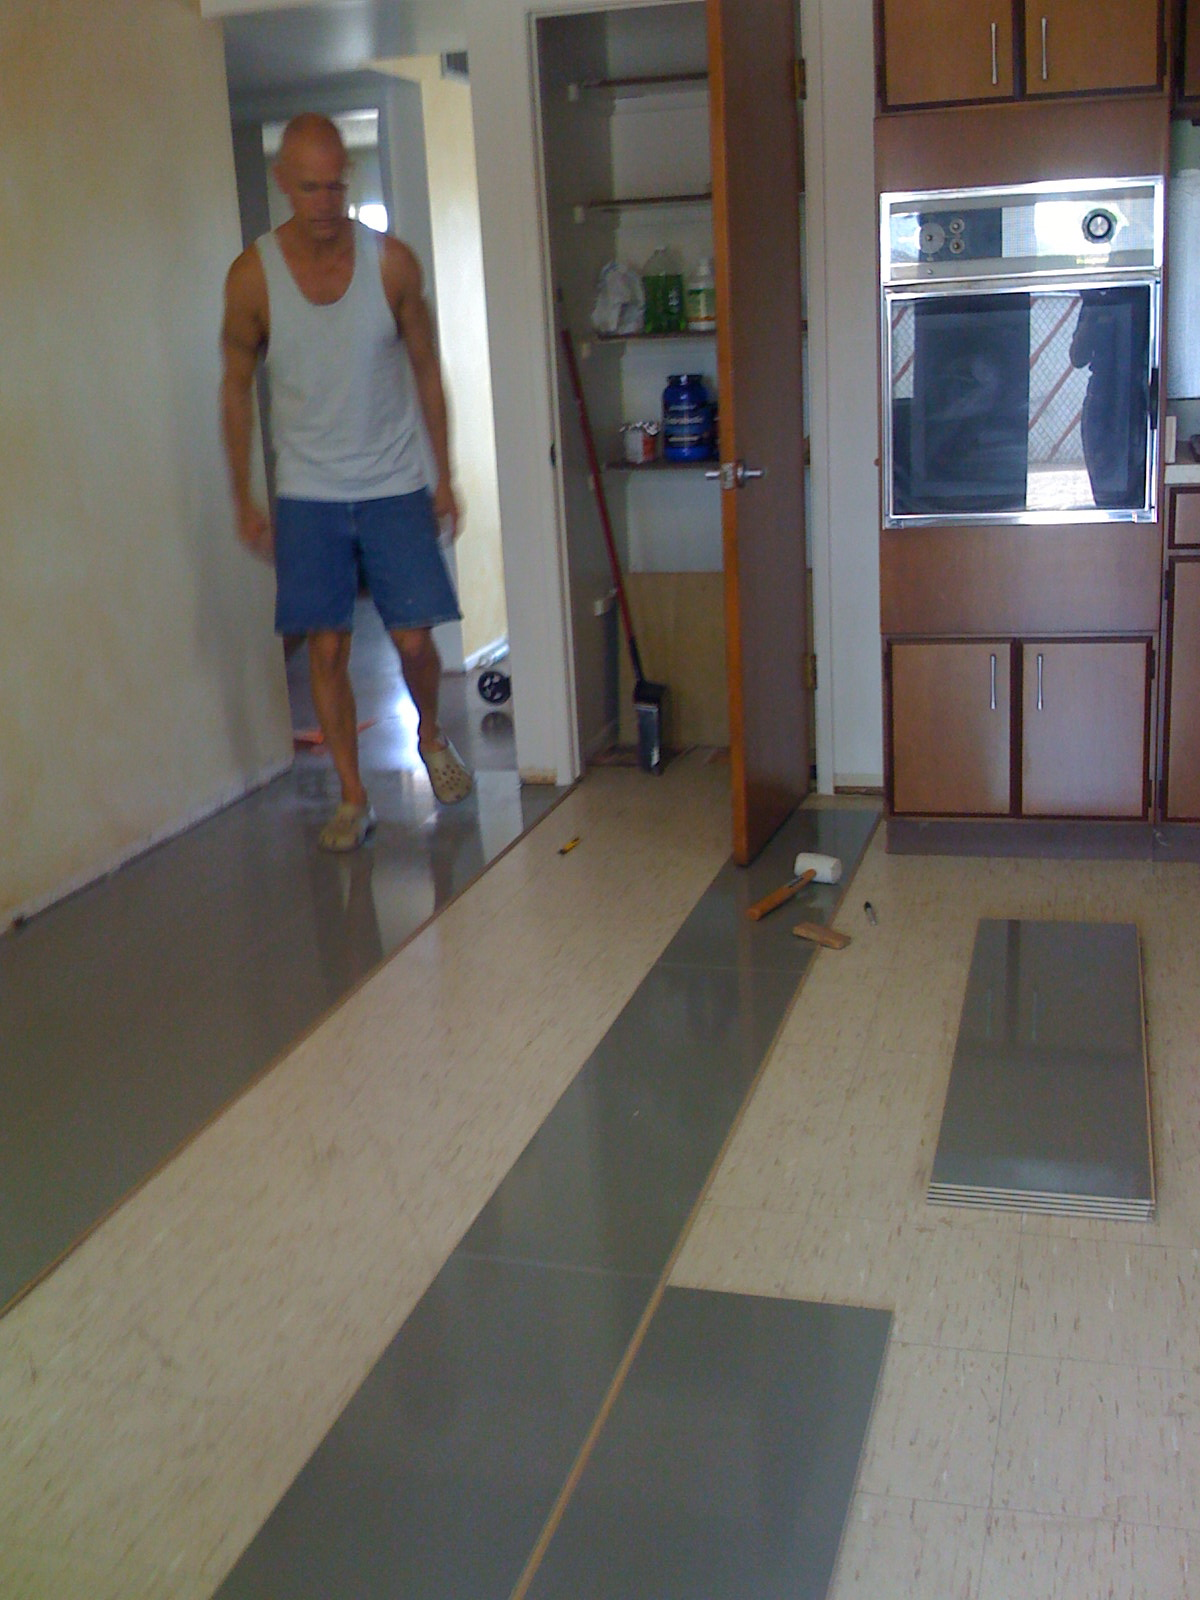 beautiful new flooring in the kitchen laminate flooring in kitchen It s a simple click in place floor no adhesive no underlayment required It took us about four hours to install it in the sf kitchen